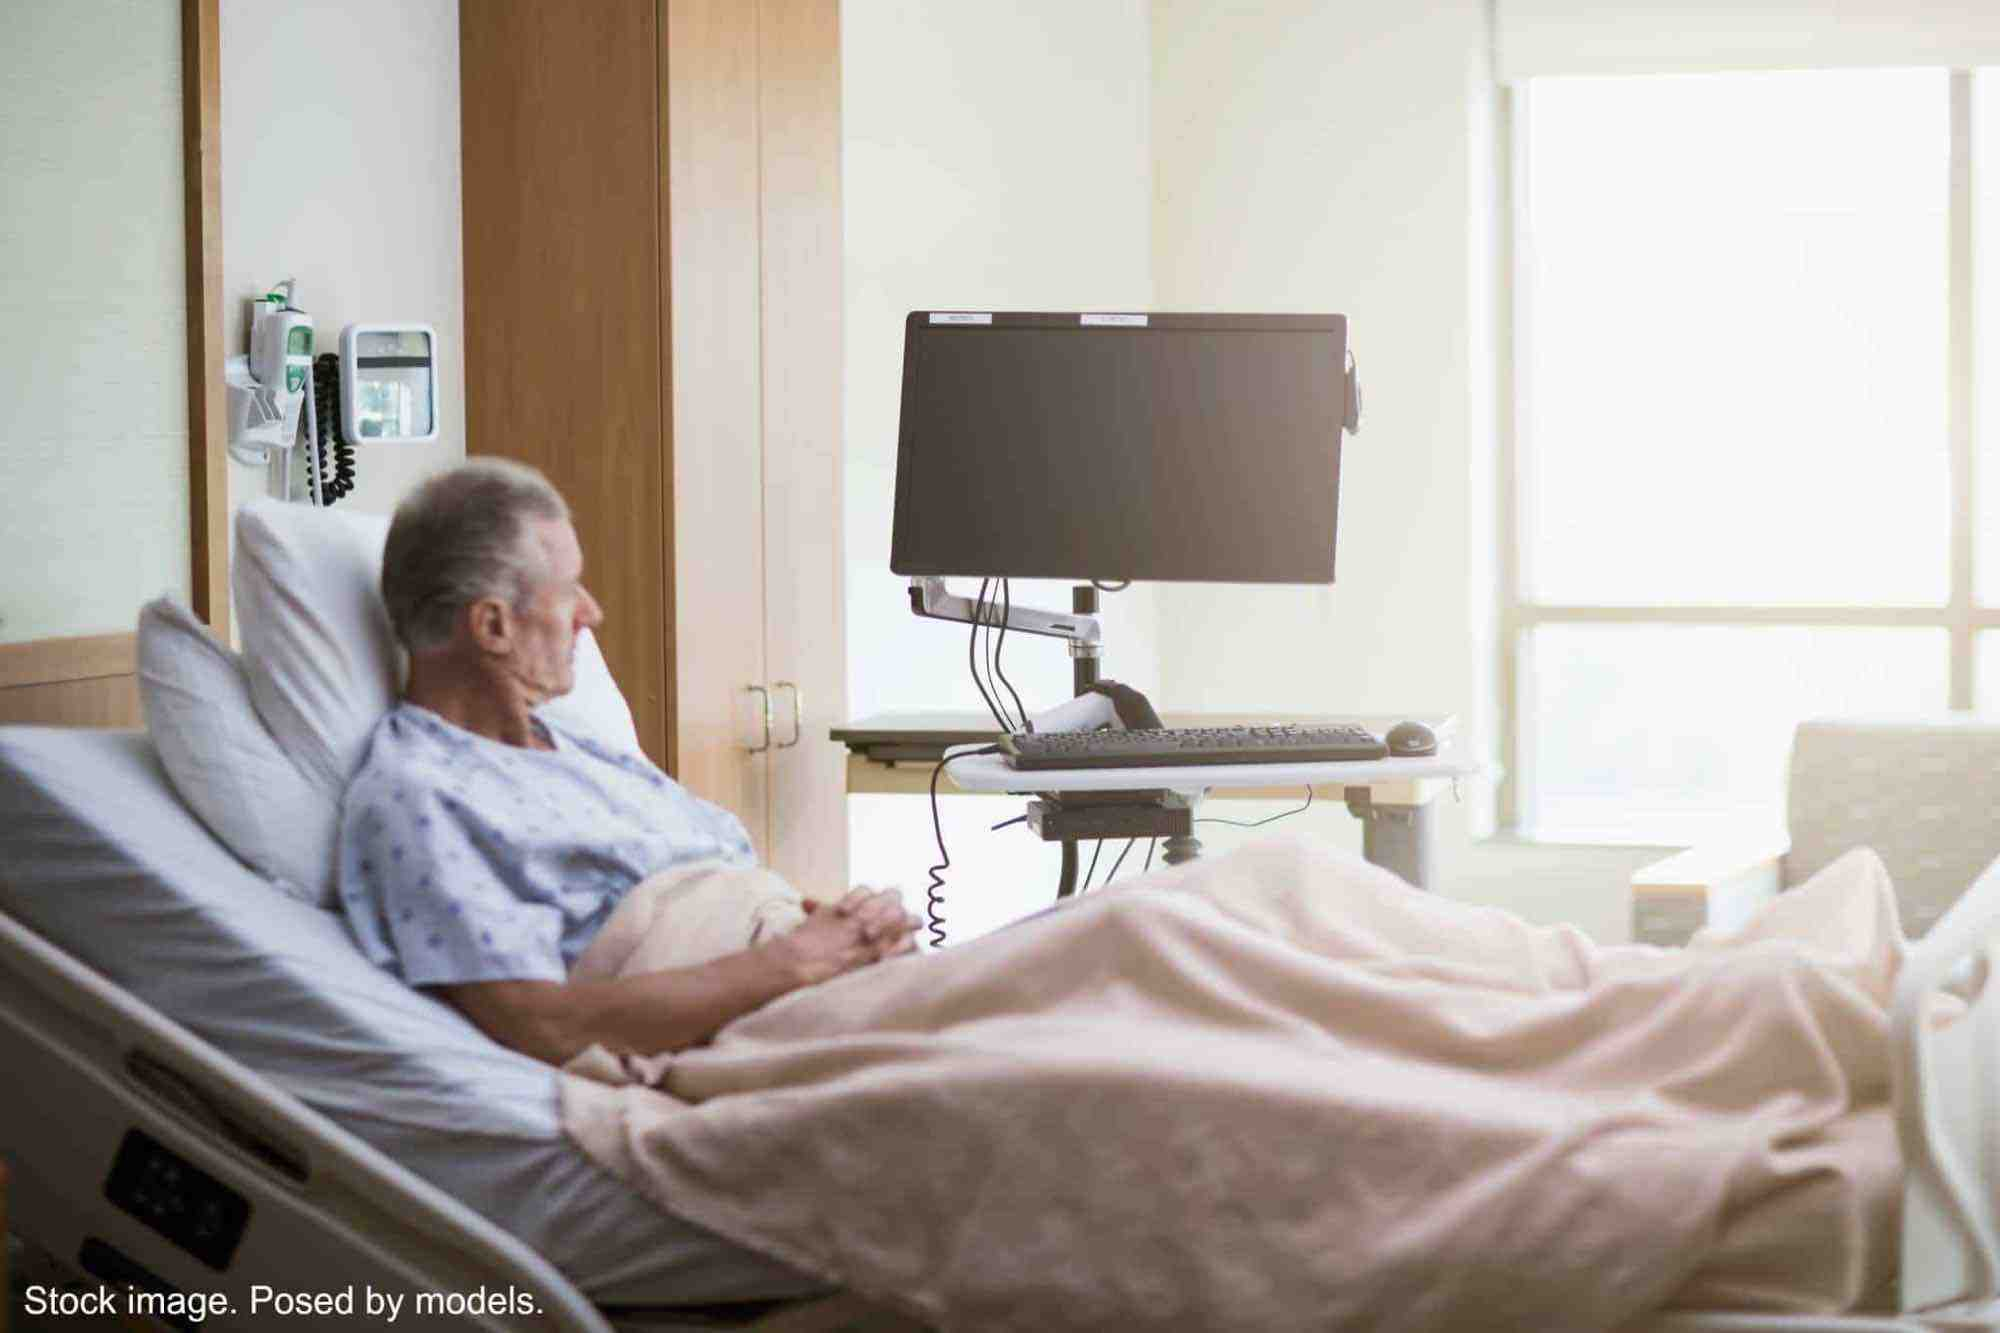 Man sitting up in hospital bed, alone